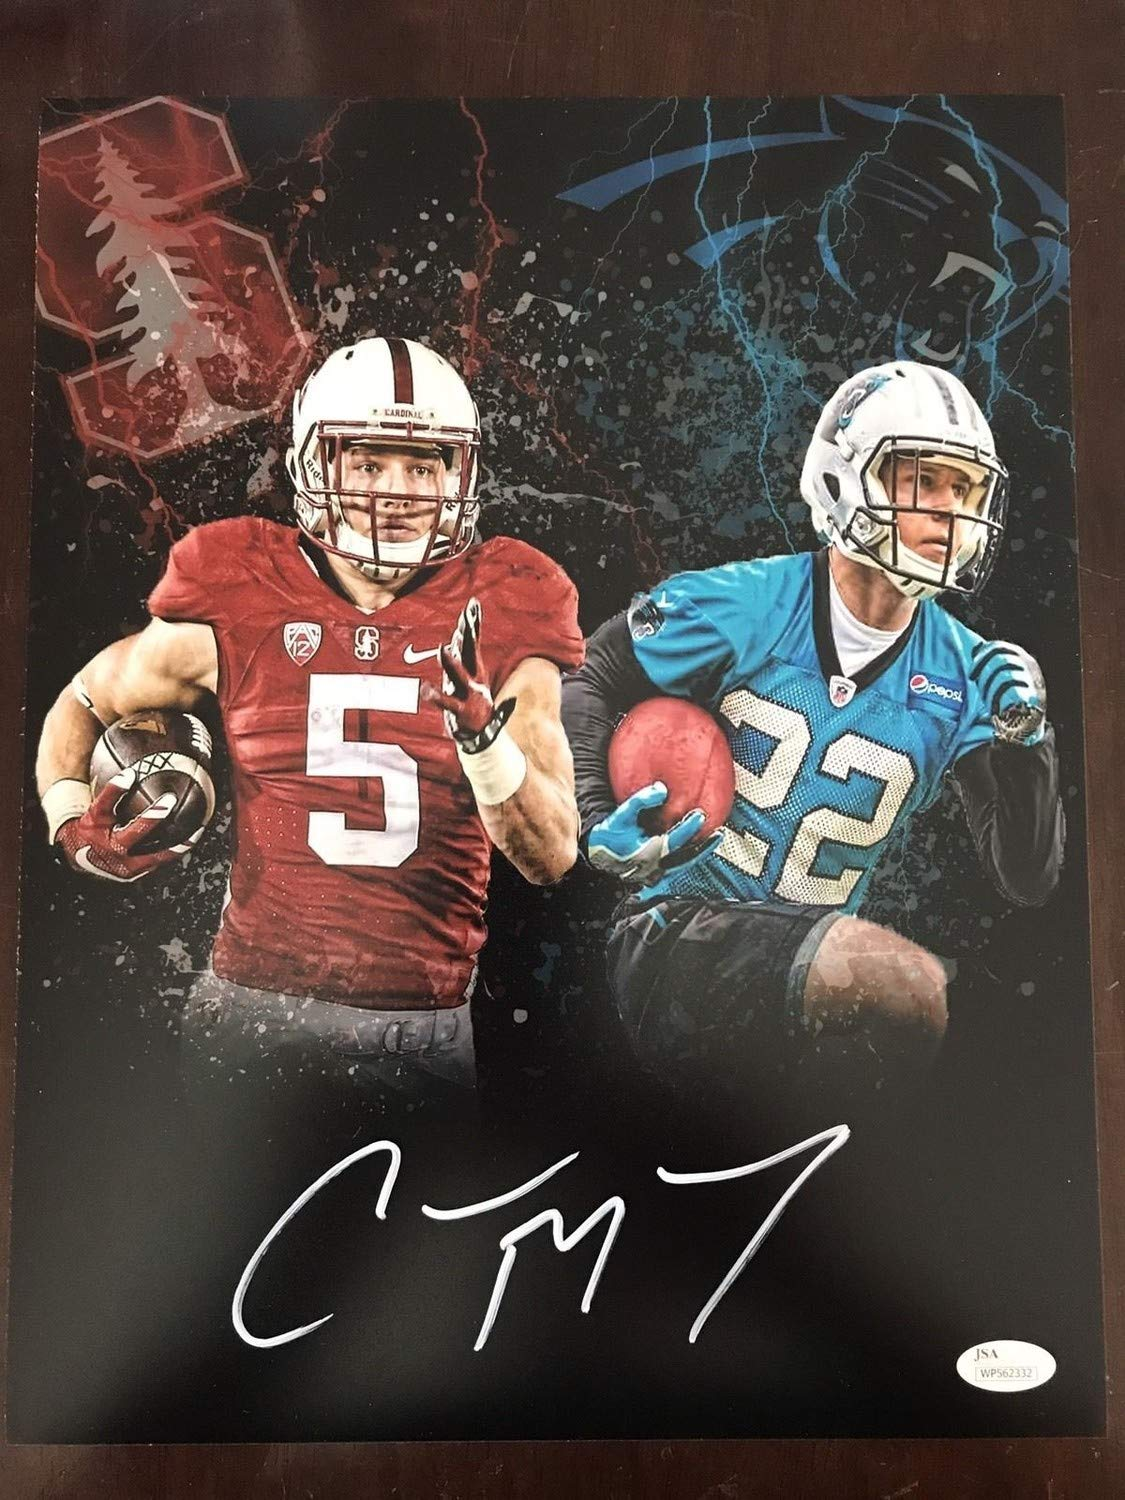 Christian Mccaffrey Autographed Signed 11x14 Mash-Up Photo In White JSA